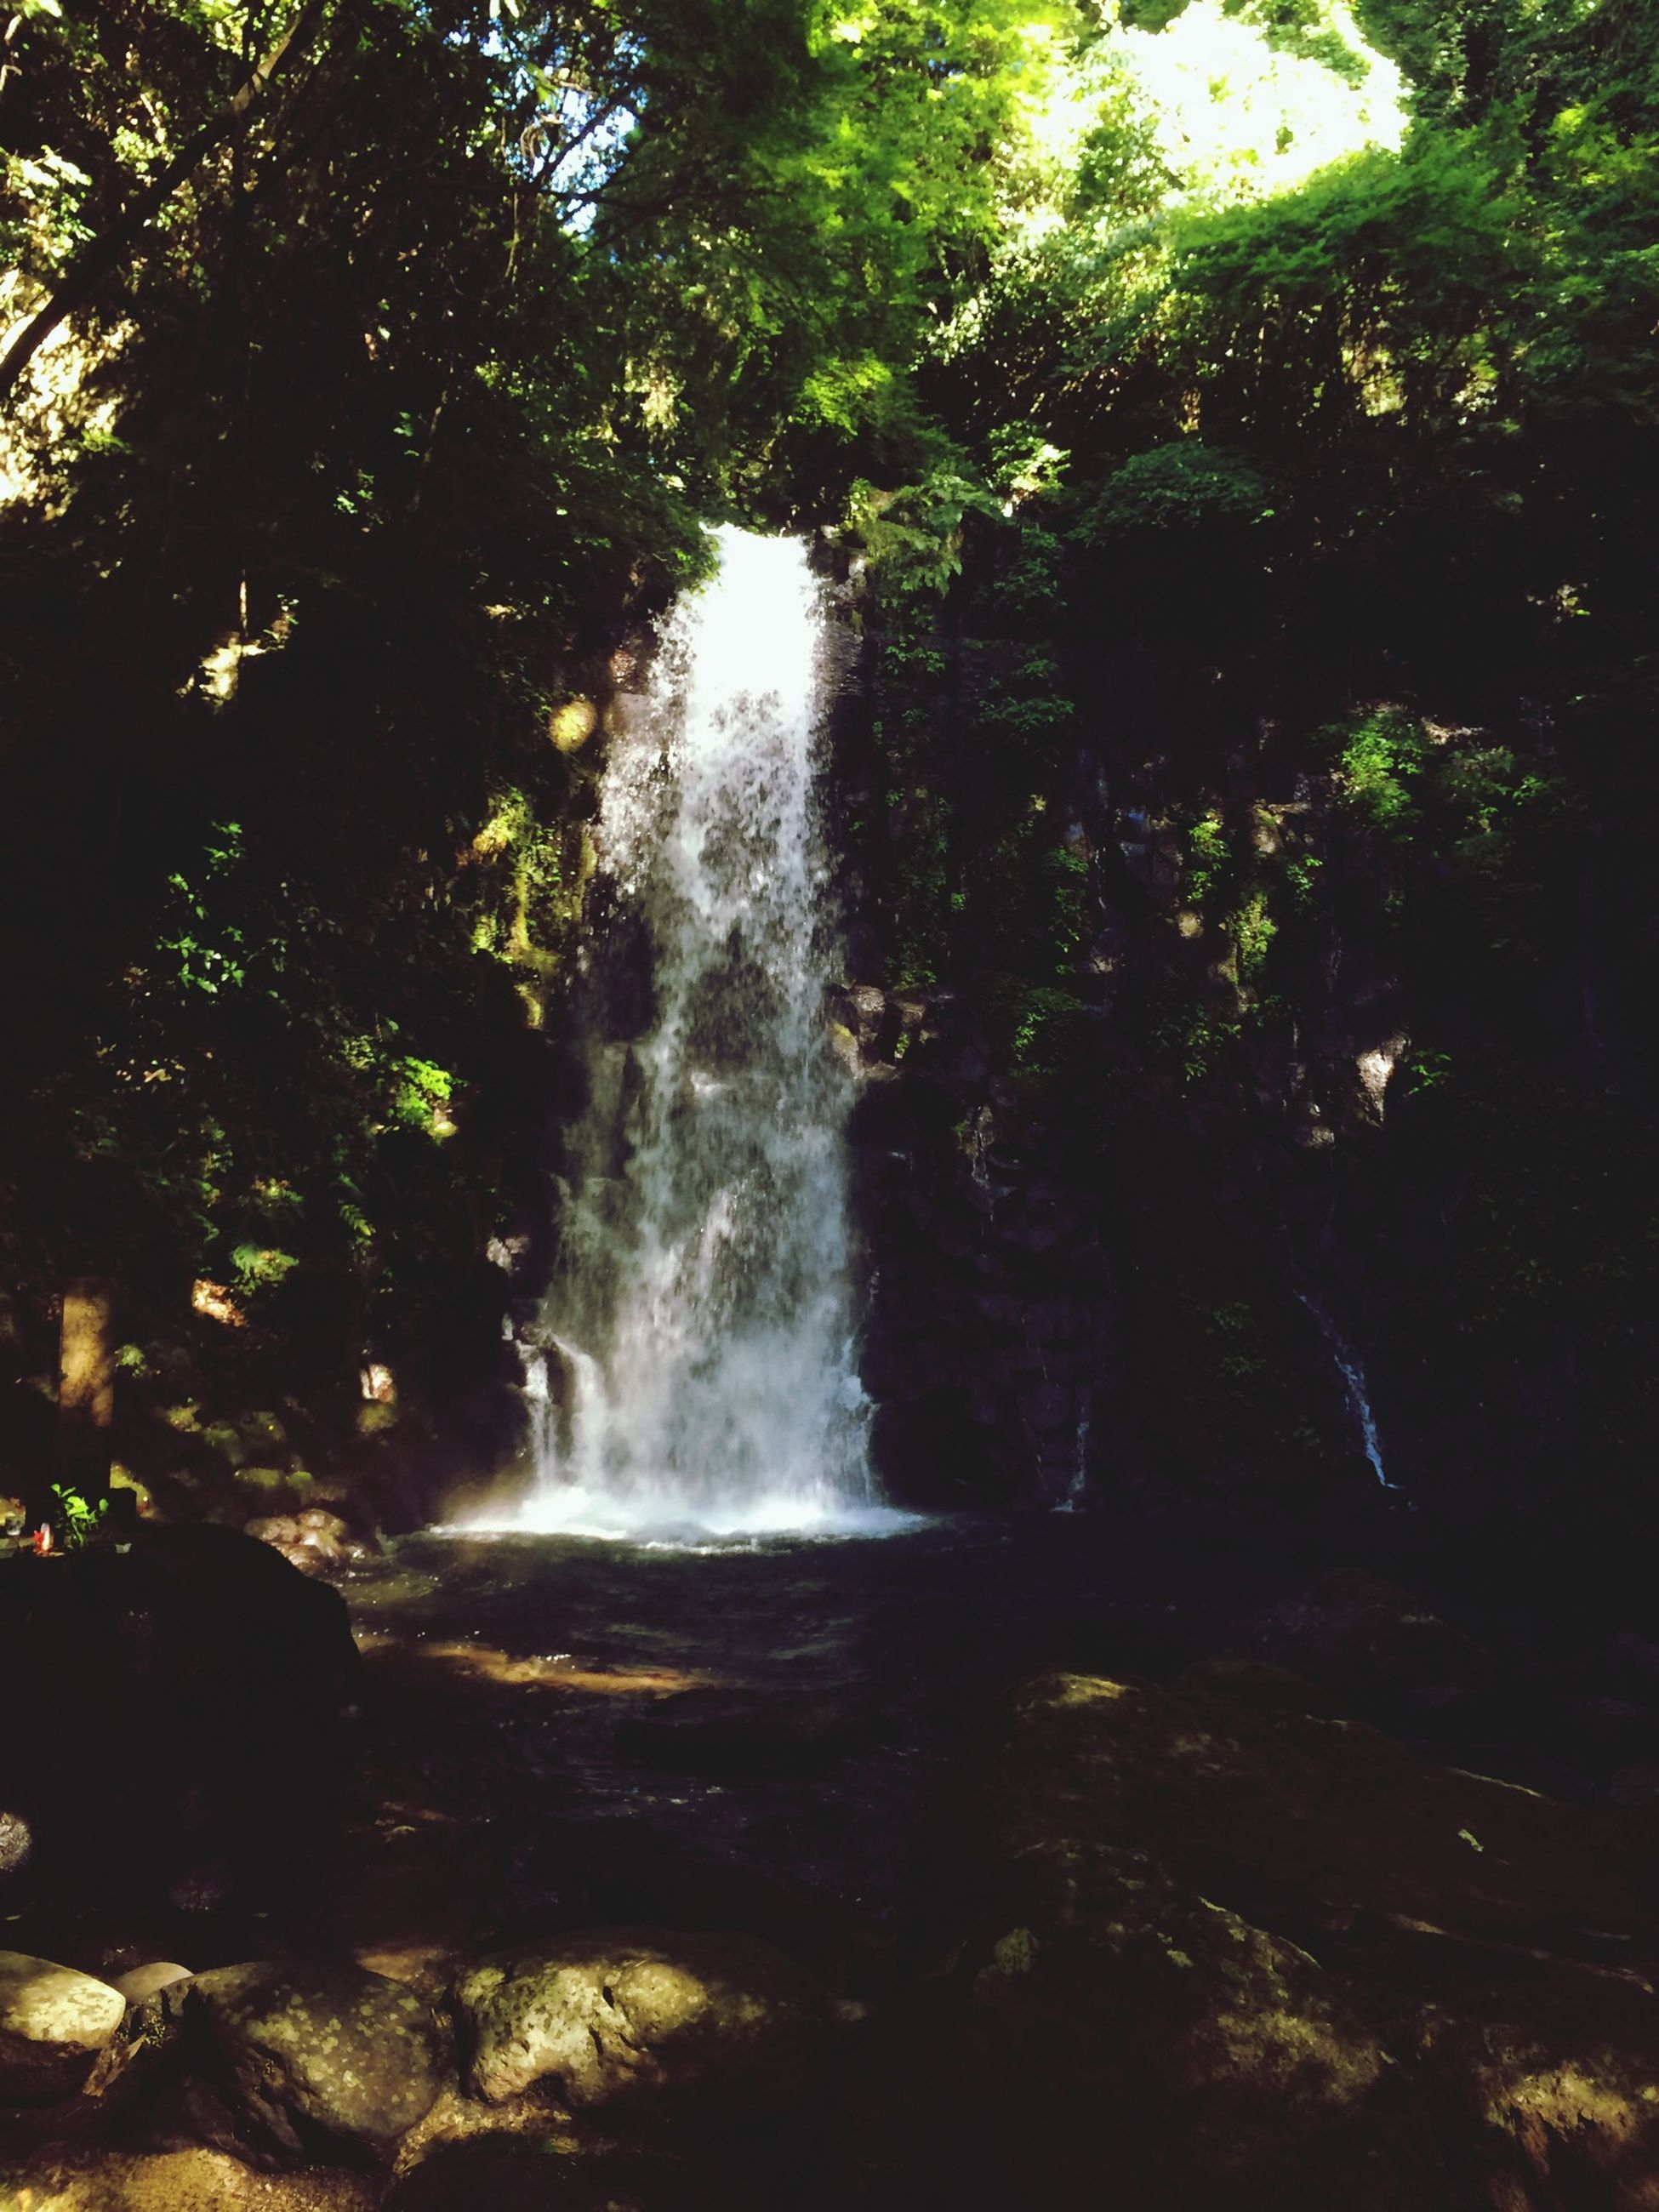 waterfall, motion, water, flowing water, long exposure, tree, flowing, nature, beauty in nature, splashing, forest, rock - object, growth, scenics, blurred motion, plant, low angle view, outdoors, day, no people